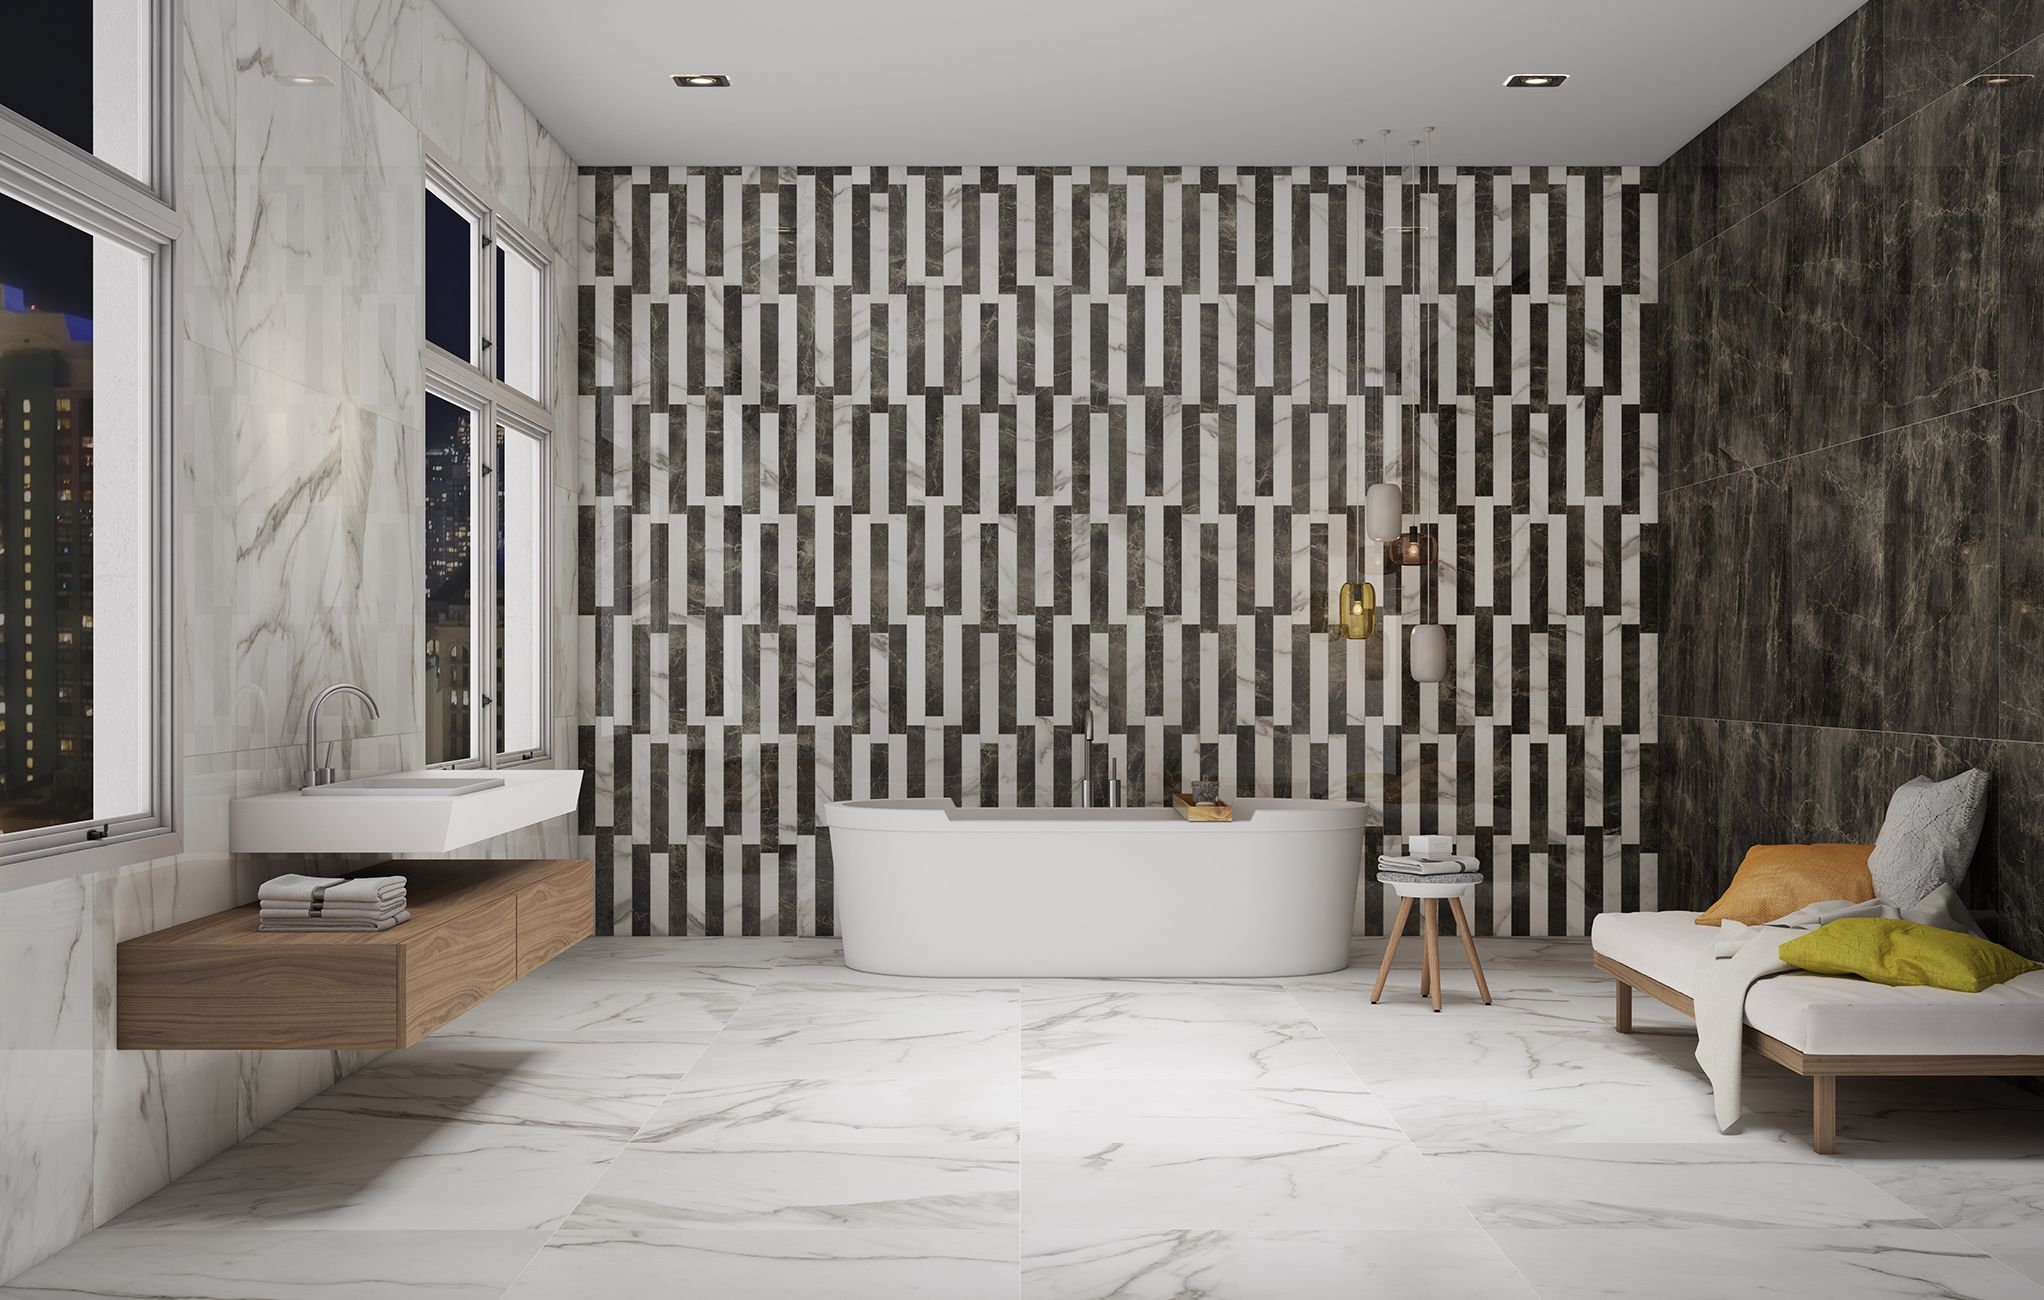 Marble 7 0 Collection By Apavisa Exclusive Marble Design For Rectified Porcelain Tiles Badezimmer Fliesen Badezimmer Dekor Und Wohnung Badezimmer Dekoration